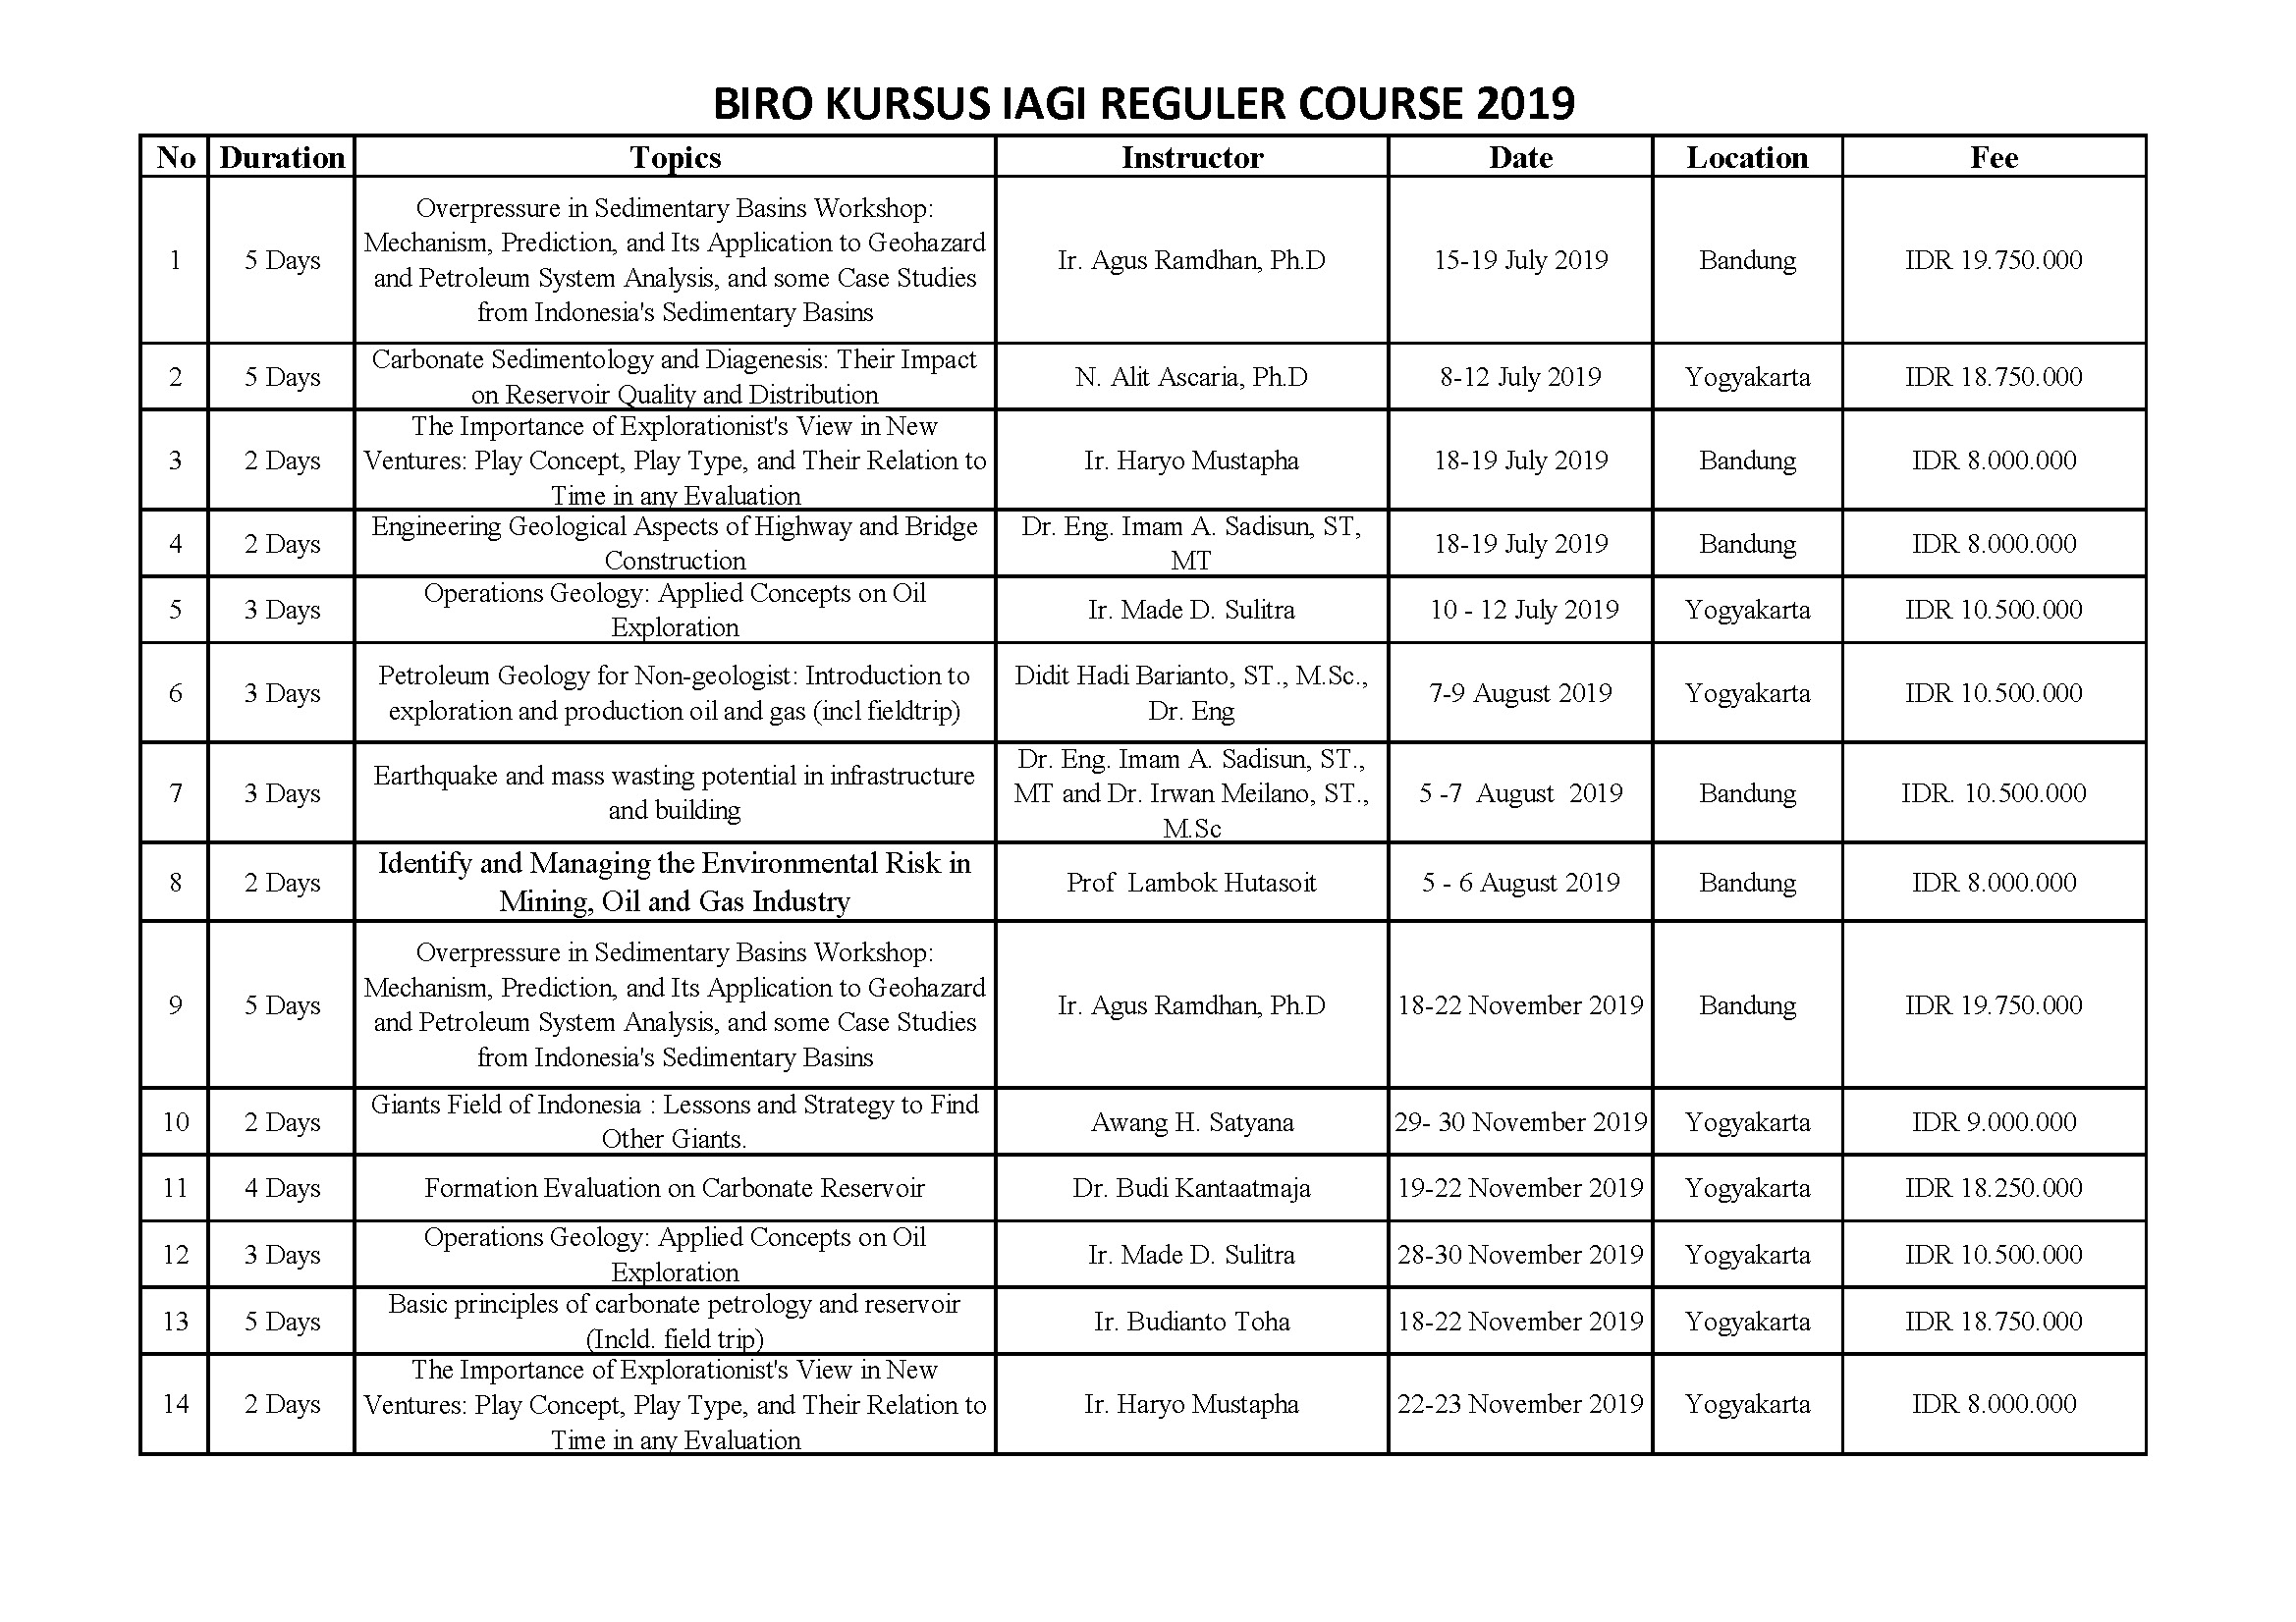 PROGRAM TRAINING BIRO KURSUS 2019